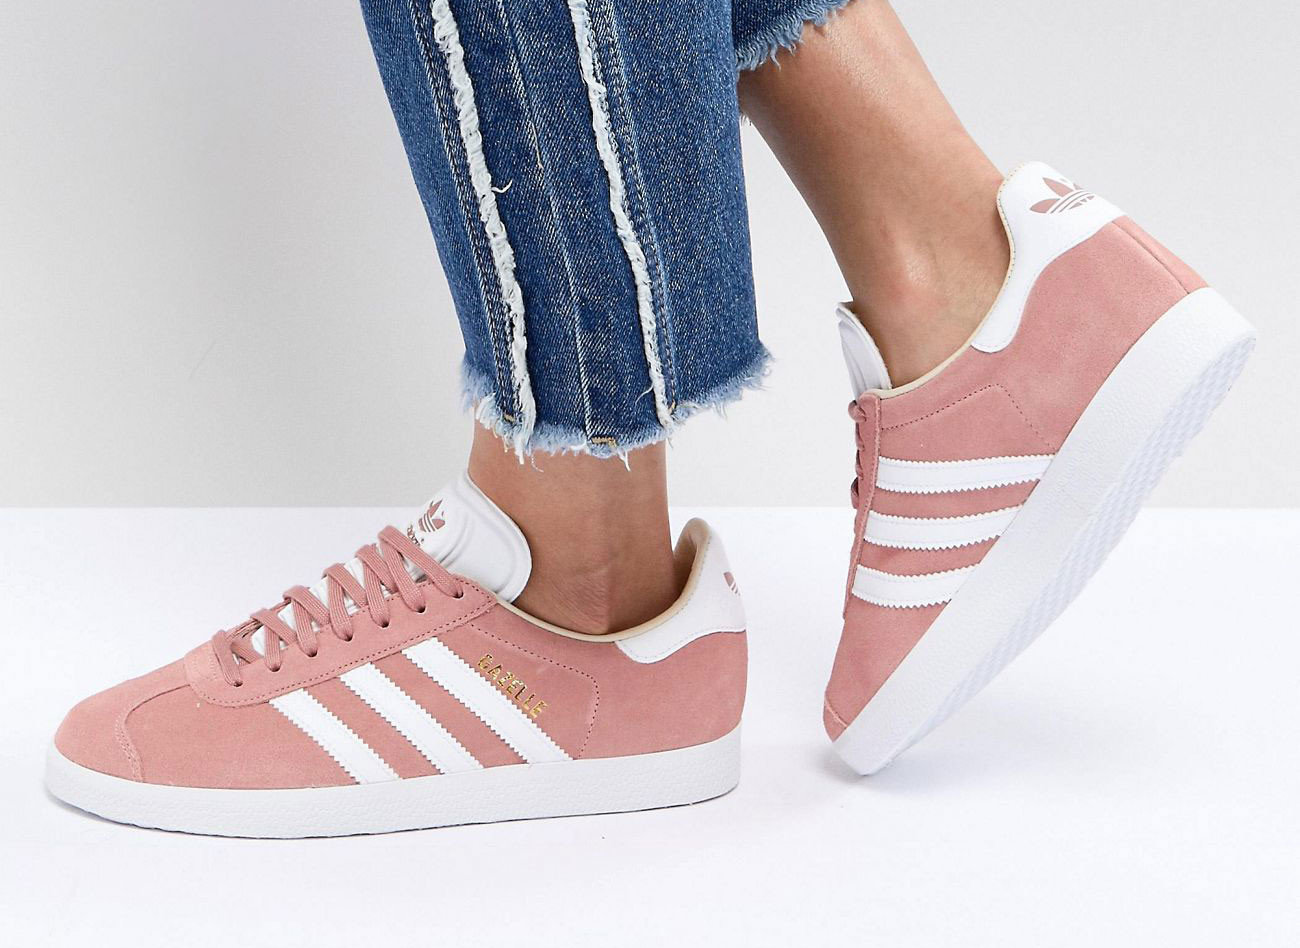 Travel Shop Travel Trends person footwear shoe white sneakers fashion outdoor shoe product design human leg product athletic shoe sportswear feet